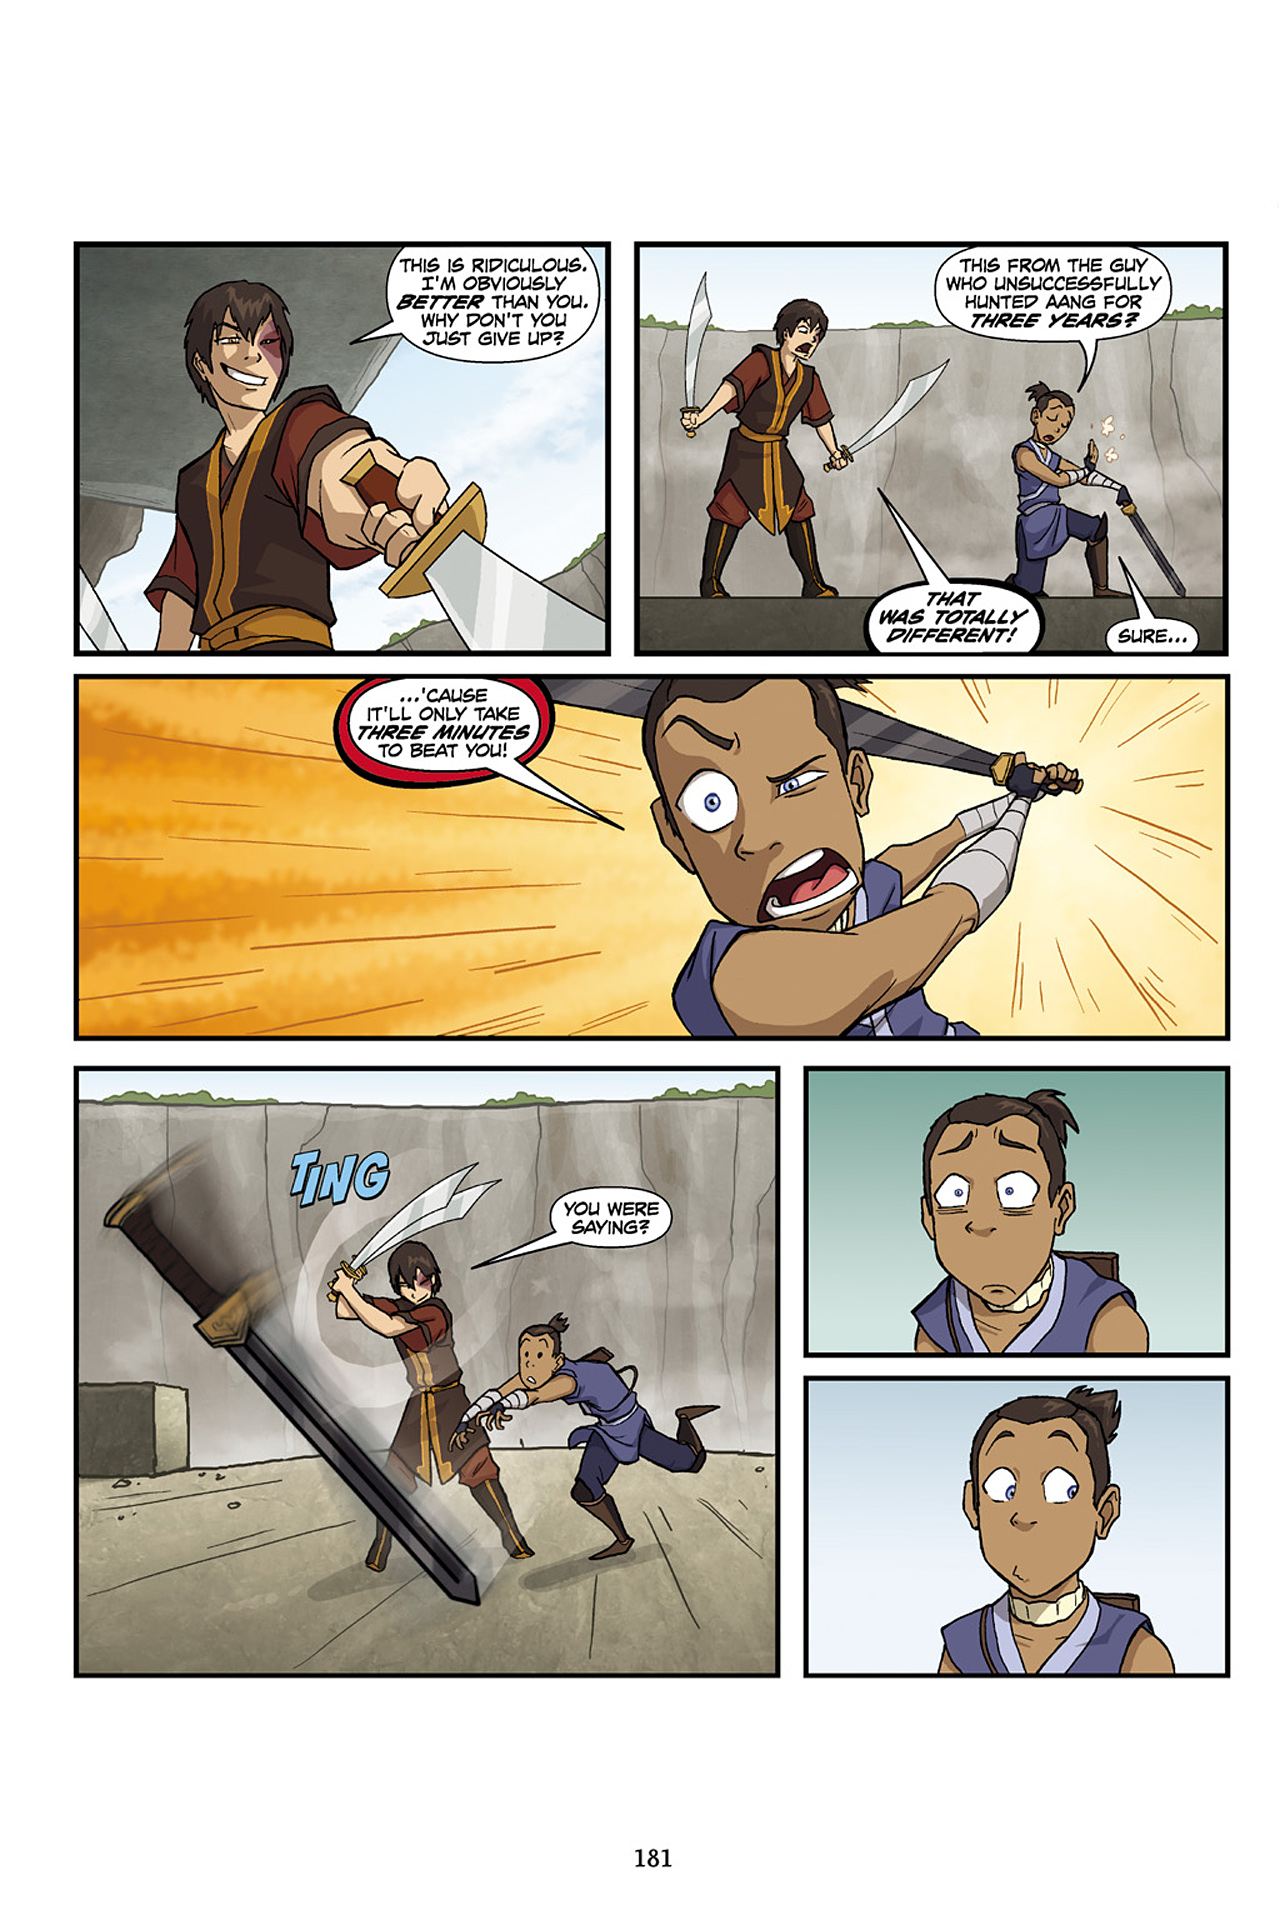 Nickelodeon Avatar: The Last Airbender - The Lost Adventures chap full pic 182